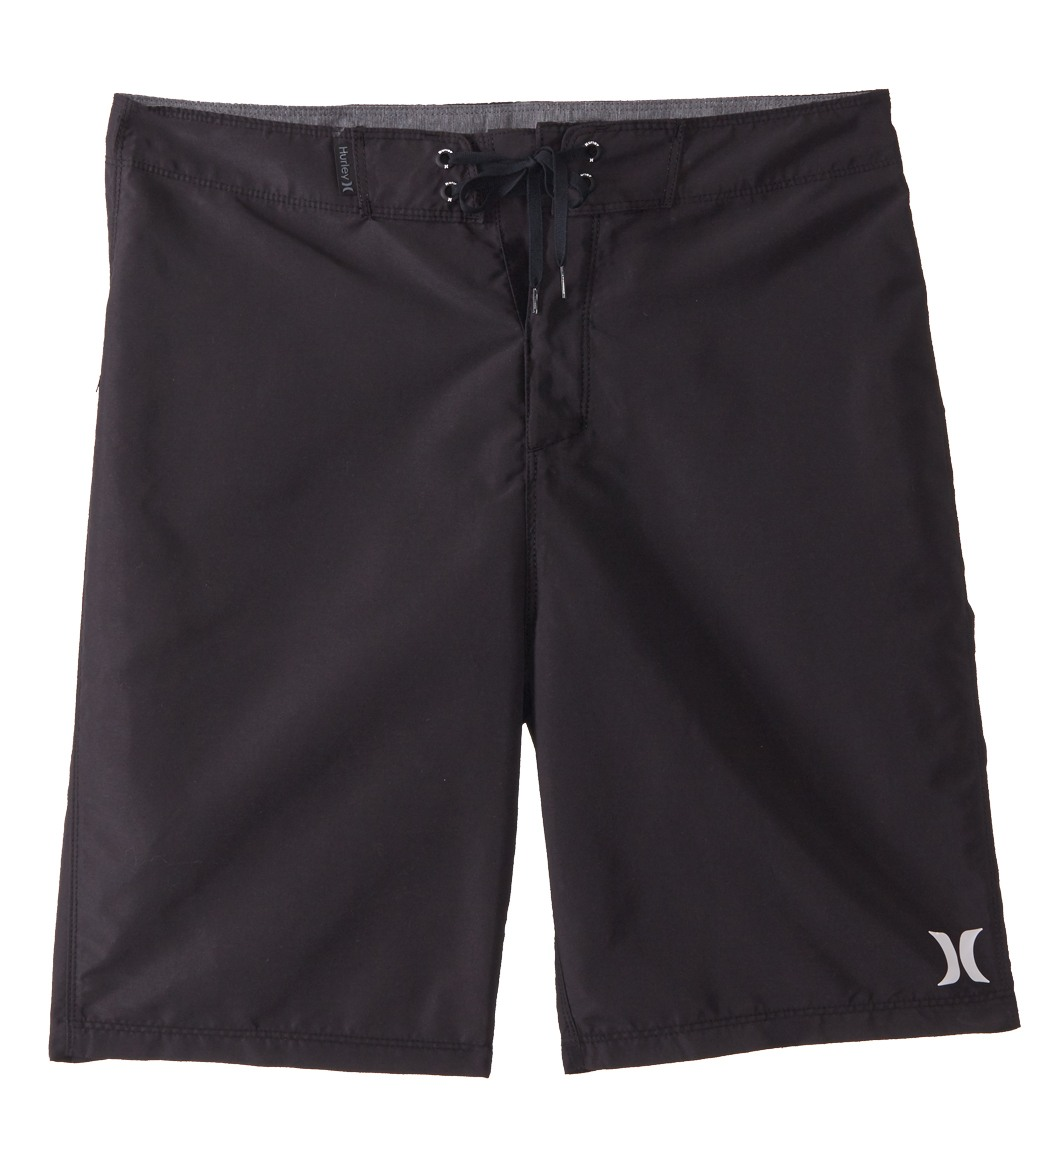 b8e412f0ad Hurley Men's One & Only 2.0 Boardshort at SwimOutlet.com